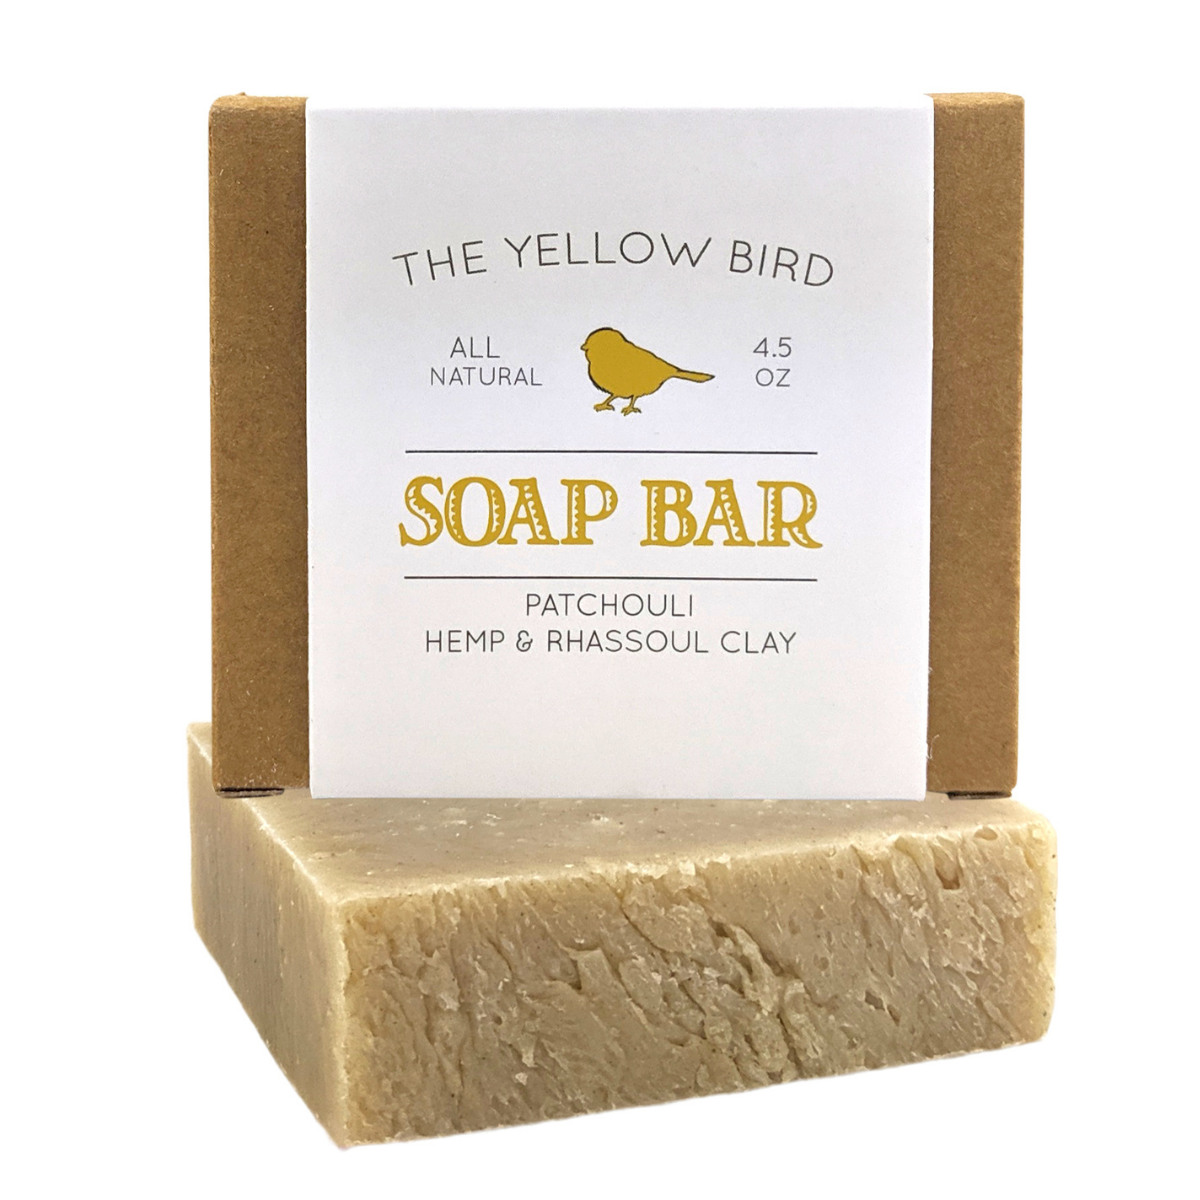 Patchouli, Hemp, Clay Soap Bar